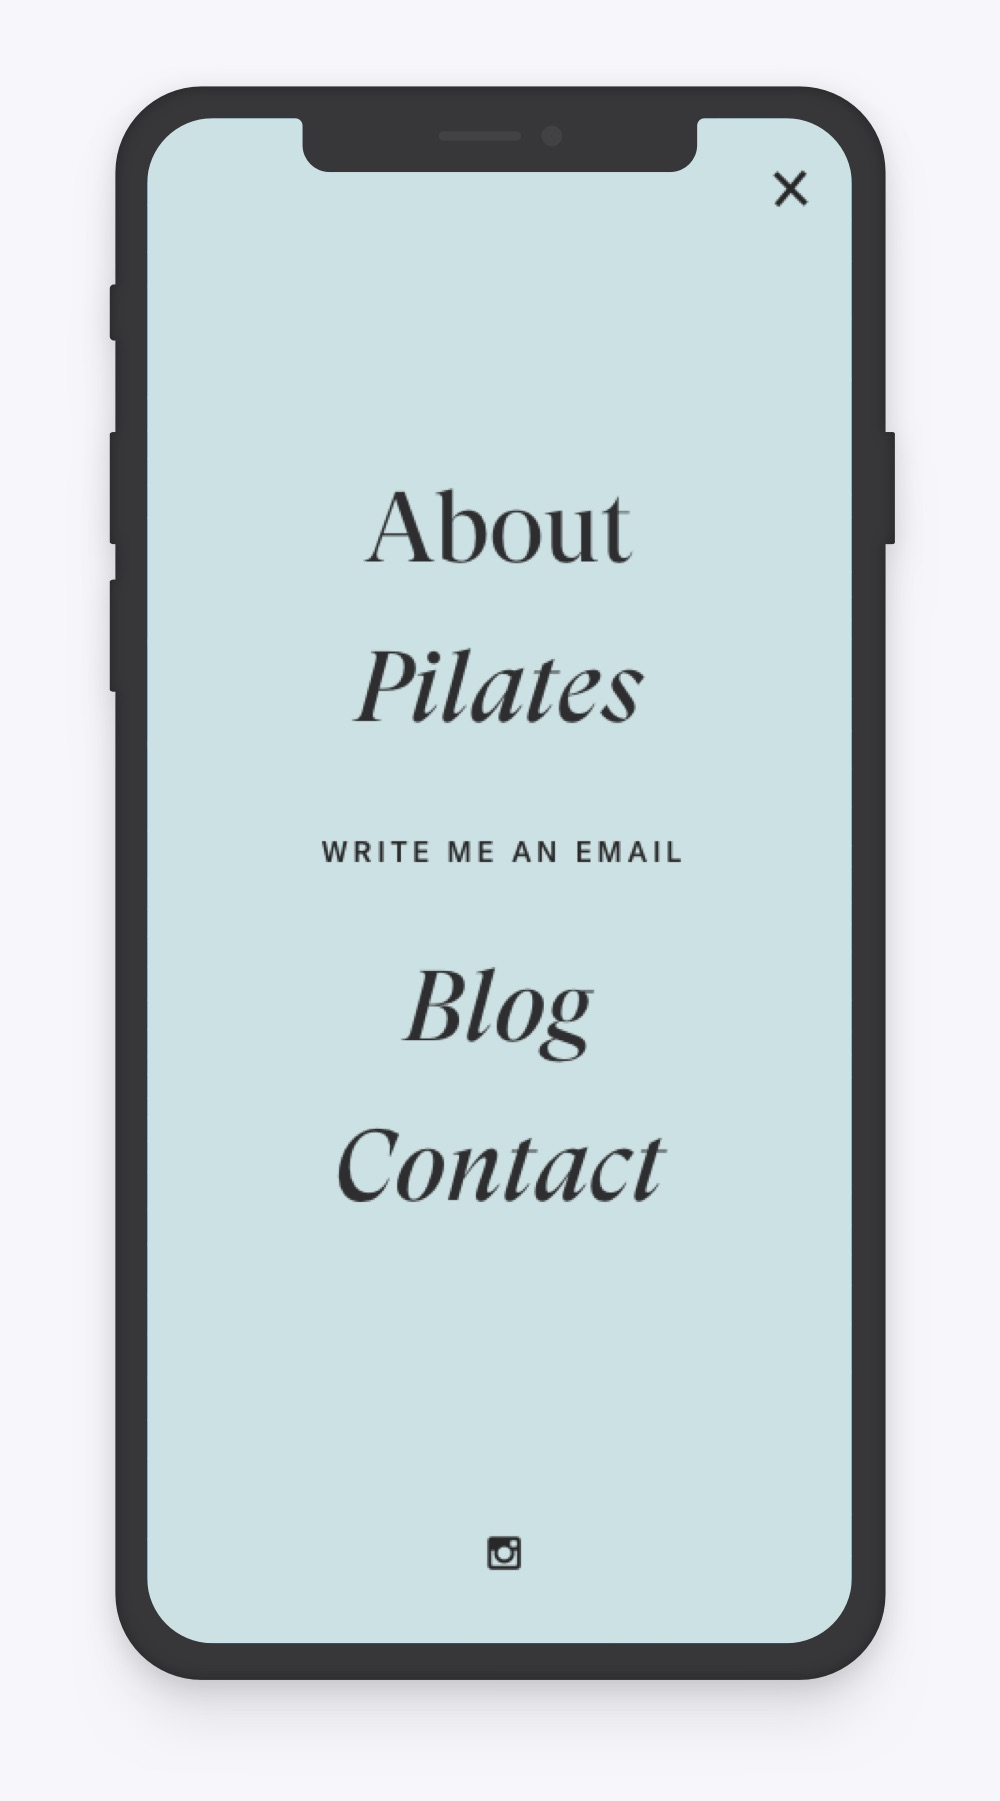 Mobile menu view of webdesign proposal for pilates studio